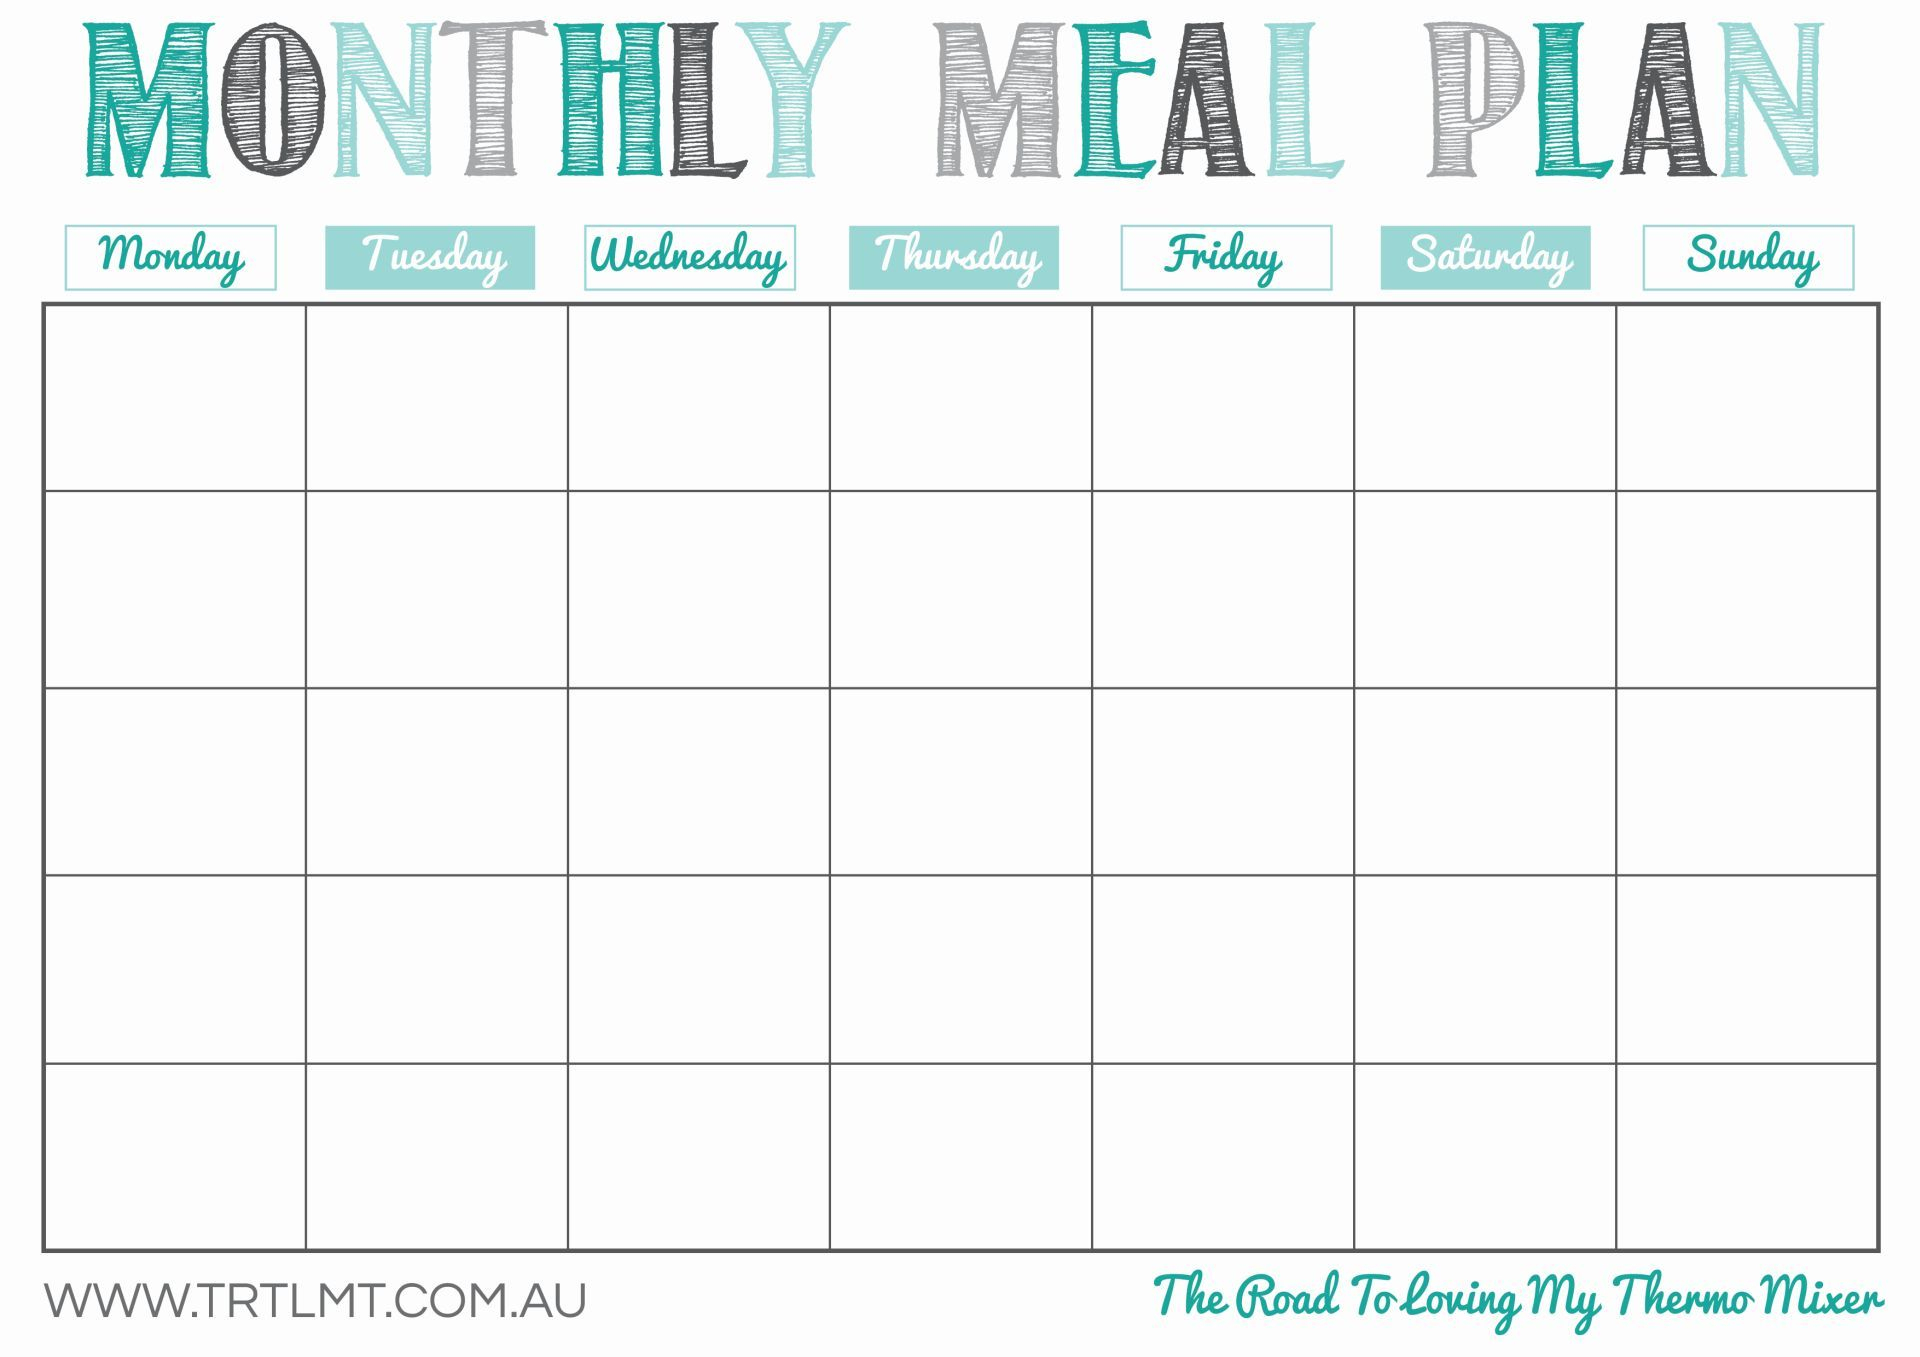 Printable Monthly Meal Planner | Organization In 2019 | Meal Planner - Free Printable Monthly Meal Planner